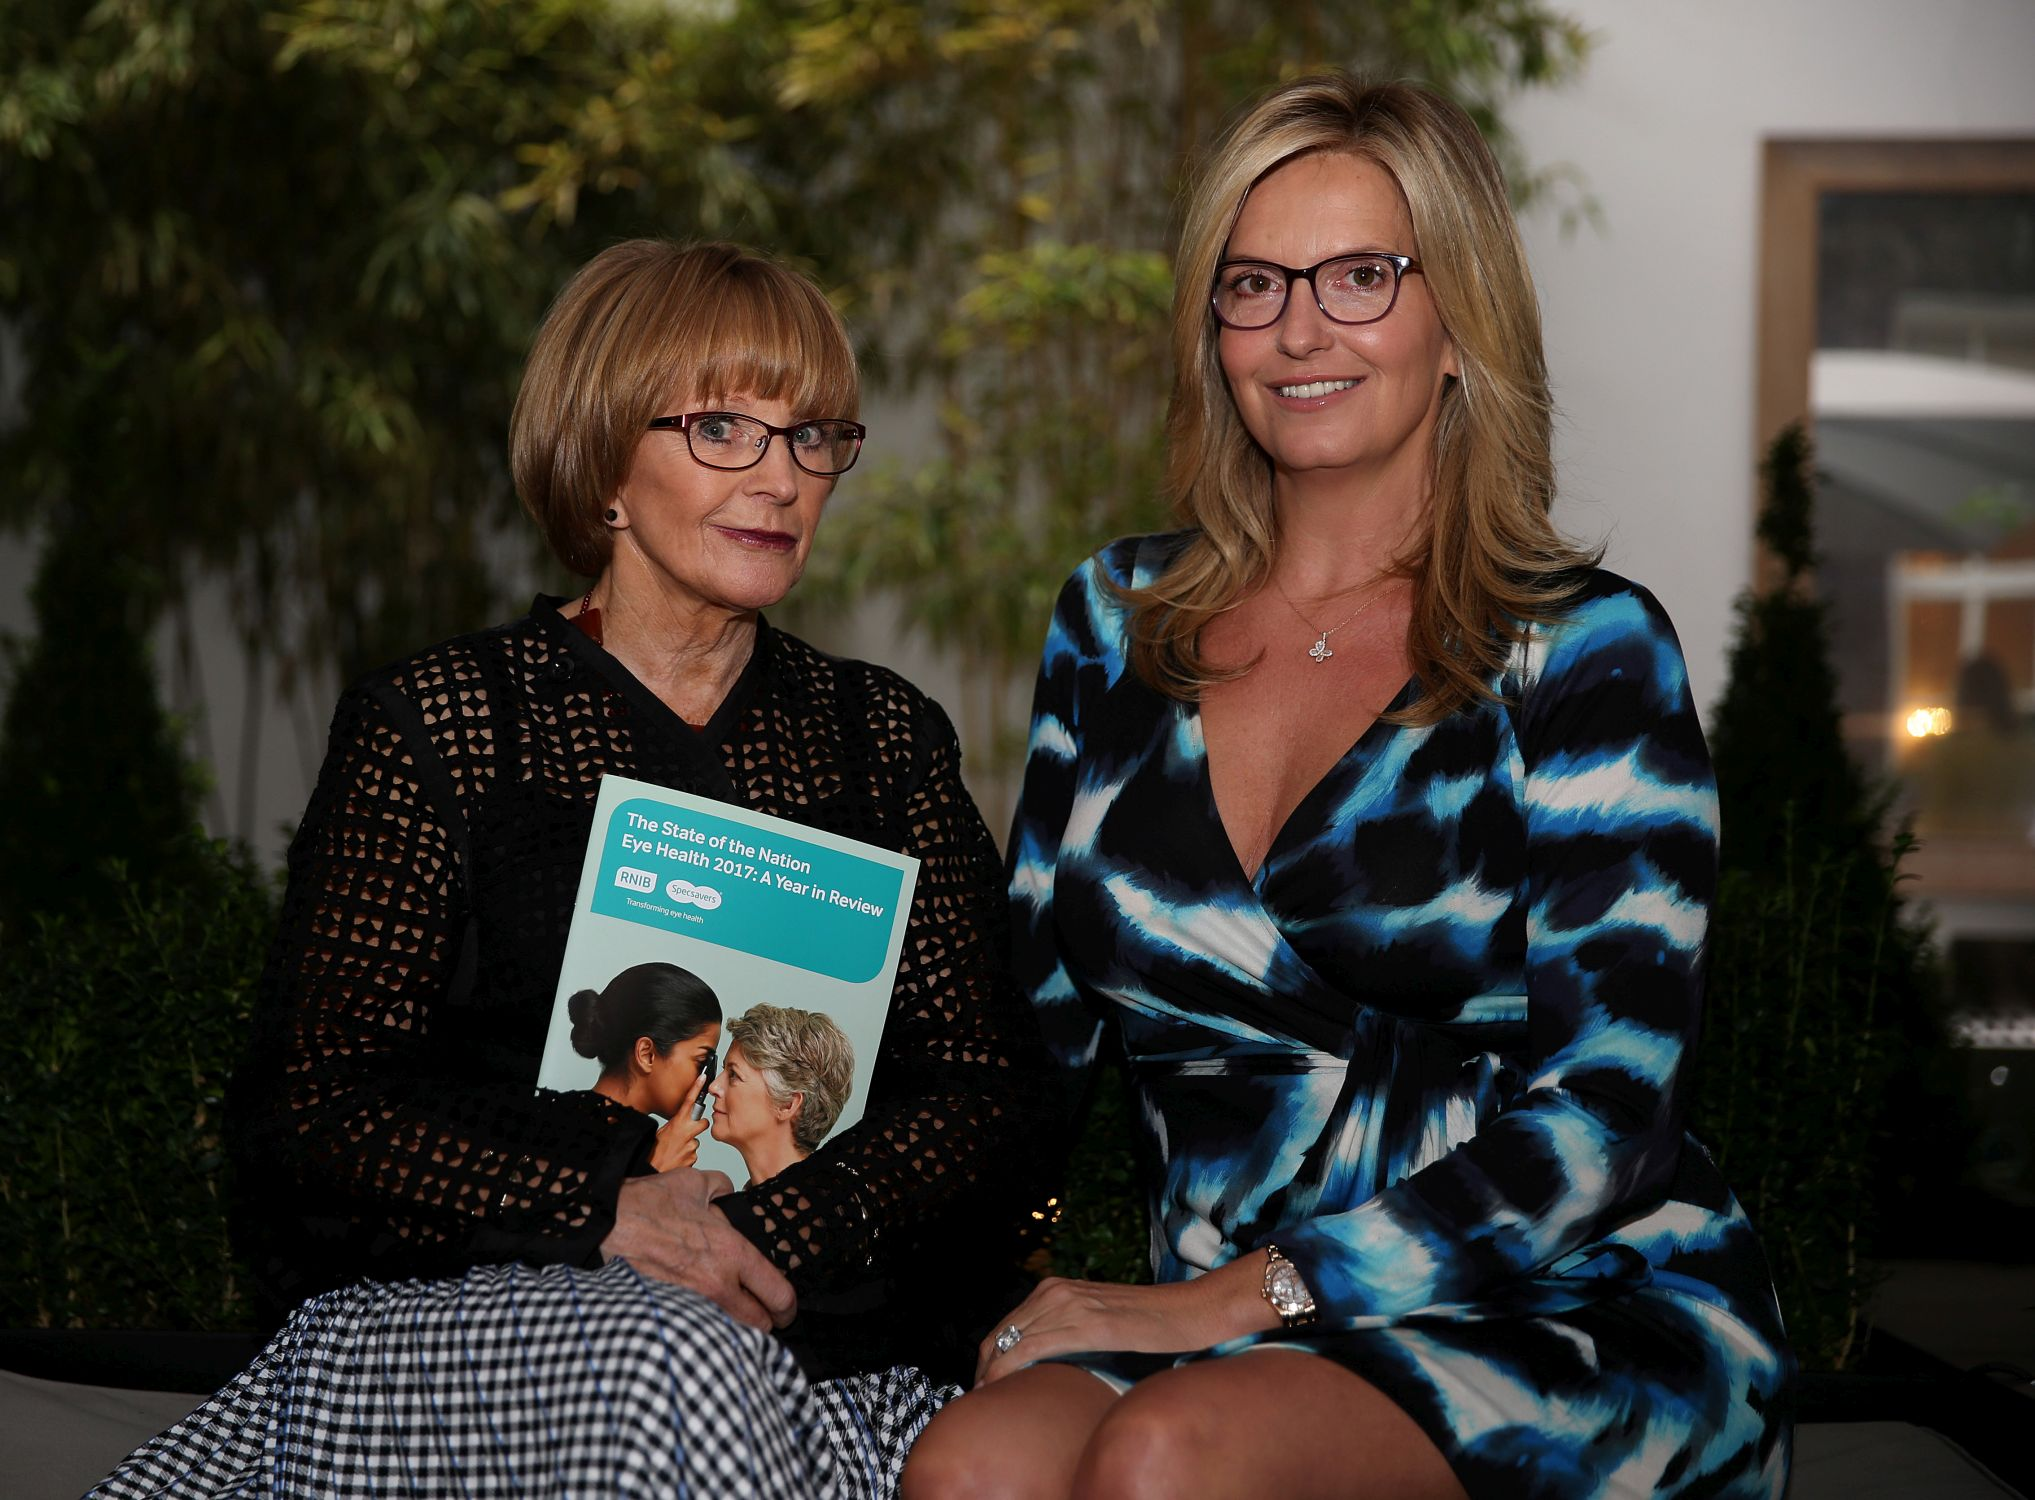 Anne Robinson ambassador for the RNIB and Specsavers Transforming Eye Health Campaig with RNIB vice-president, Penny Lancaster launching the State of the Nation Eye Health report 2017